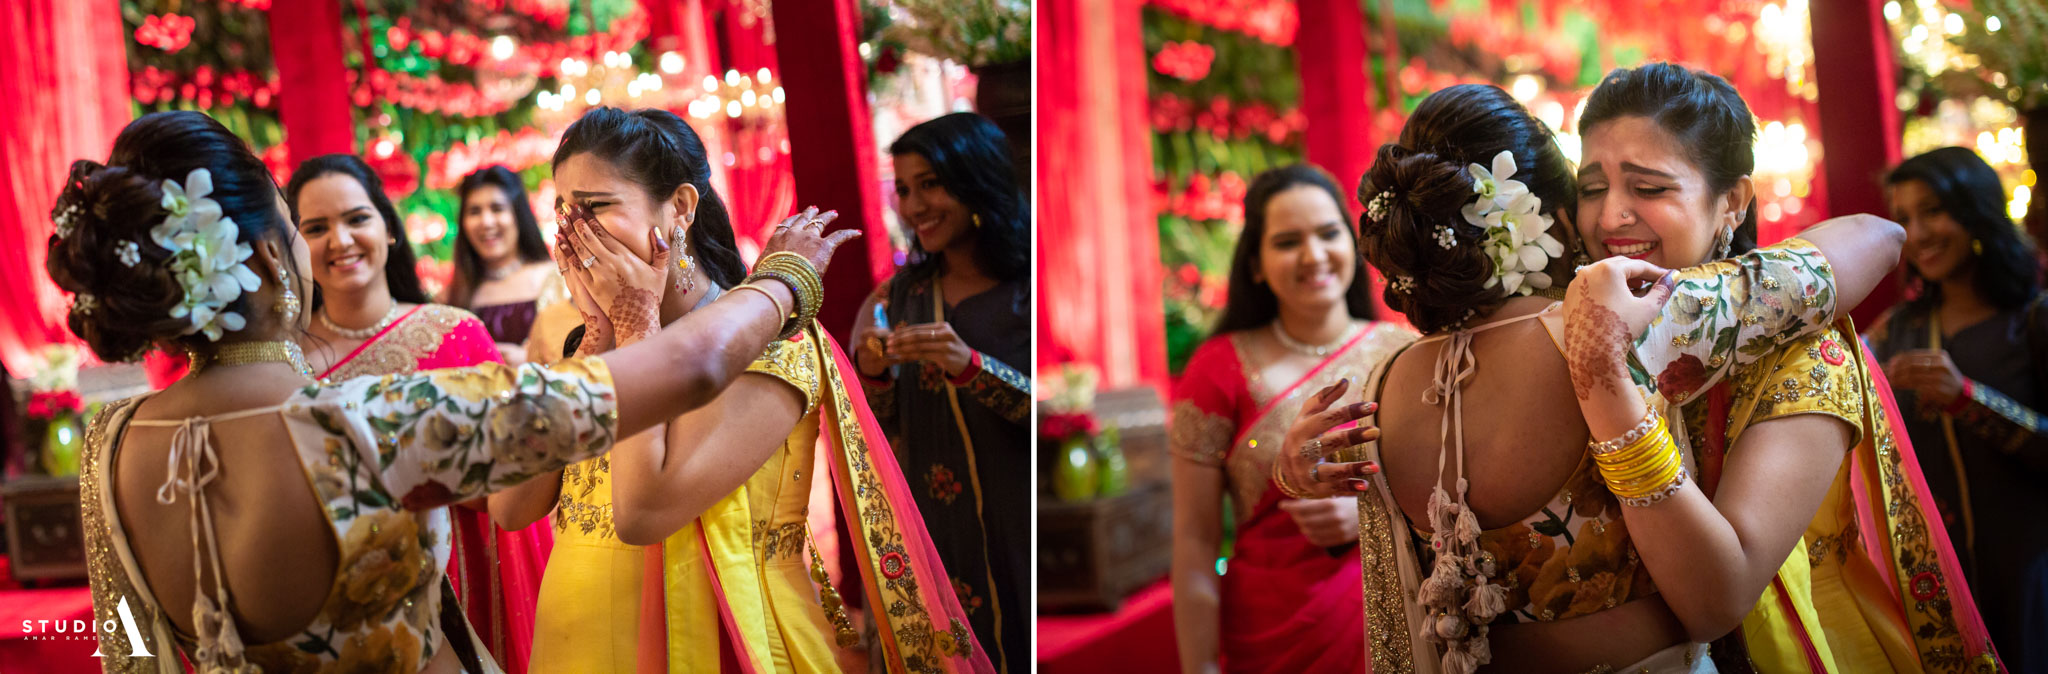 best-wedding-photographer-amarramesh-chennai-21